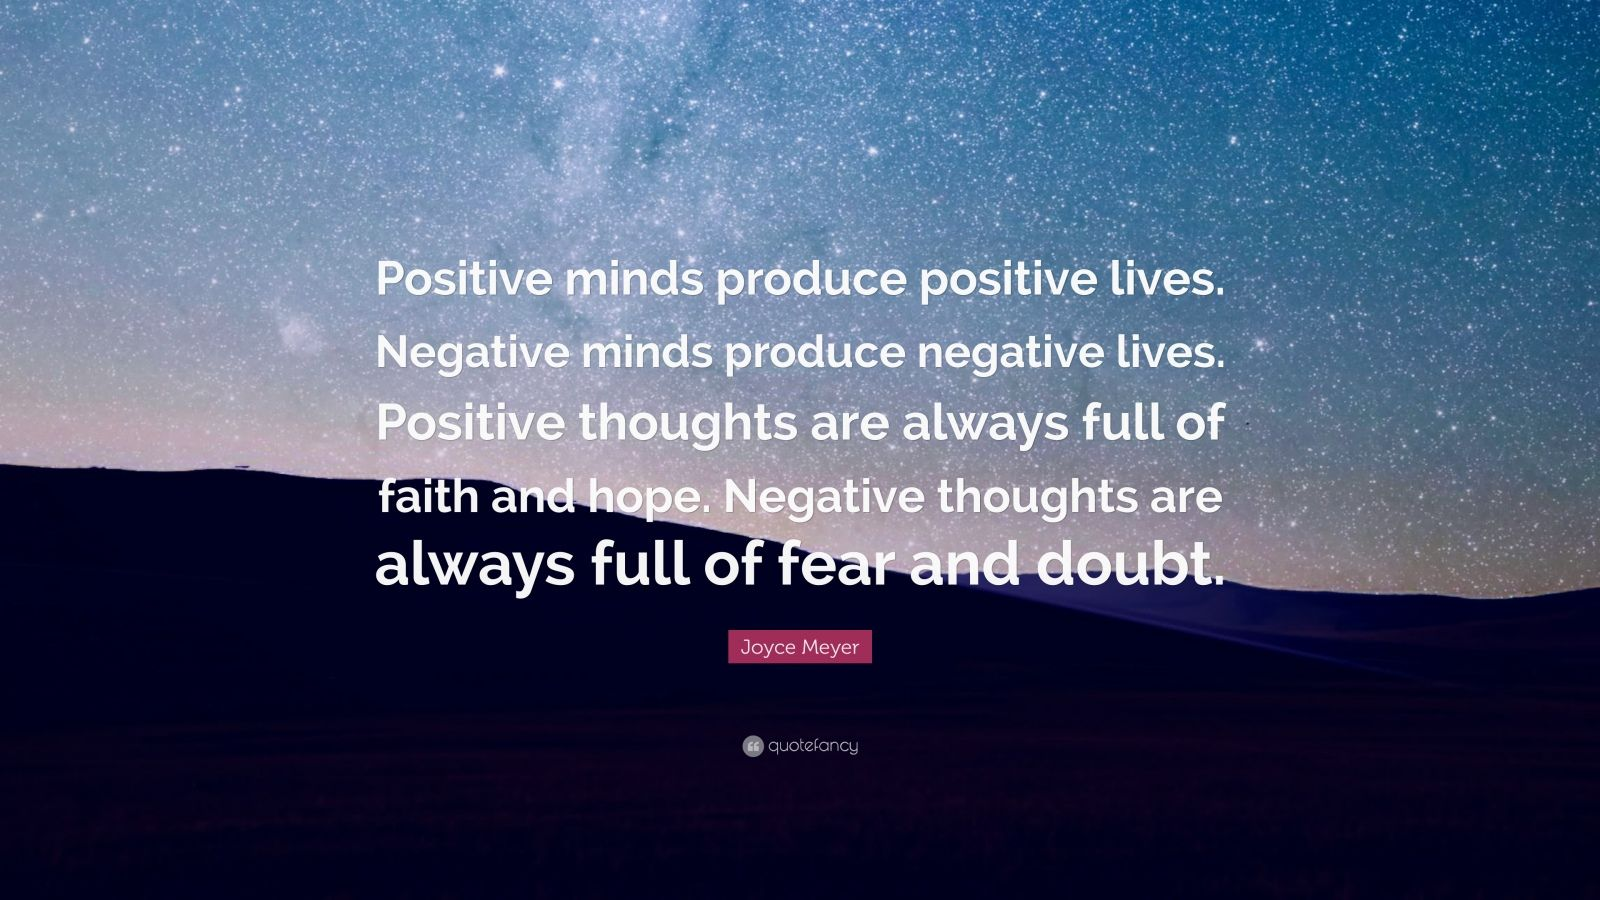 """Joyce Meyer Quote: """"Positive minds produce positive lives. Negative minds produce negative lives. Positive thoughts are always full of faith and hope. Negative thoughts are always full of fear and doubt."""""""